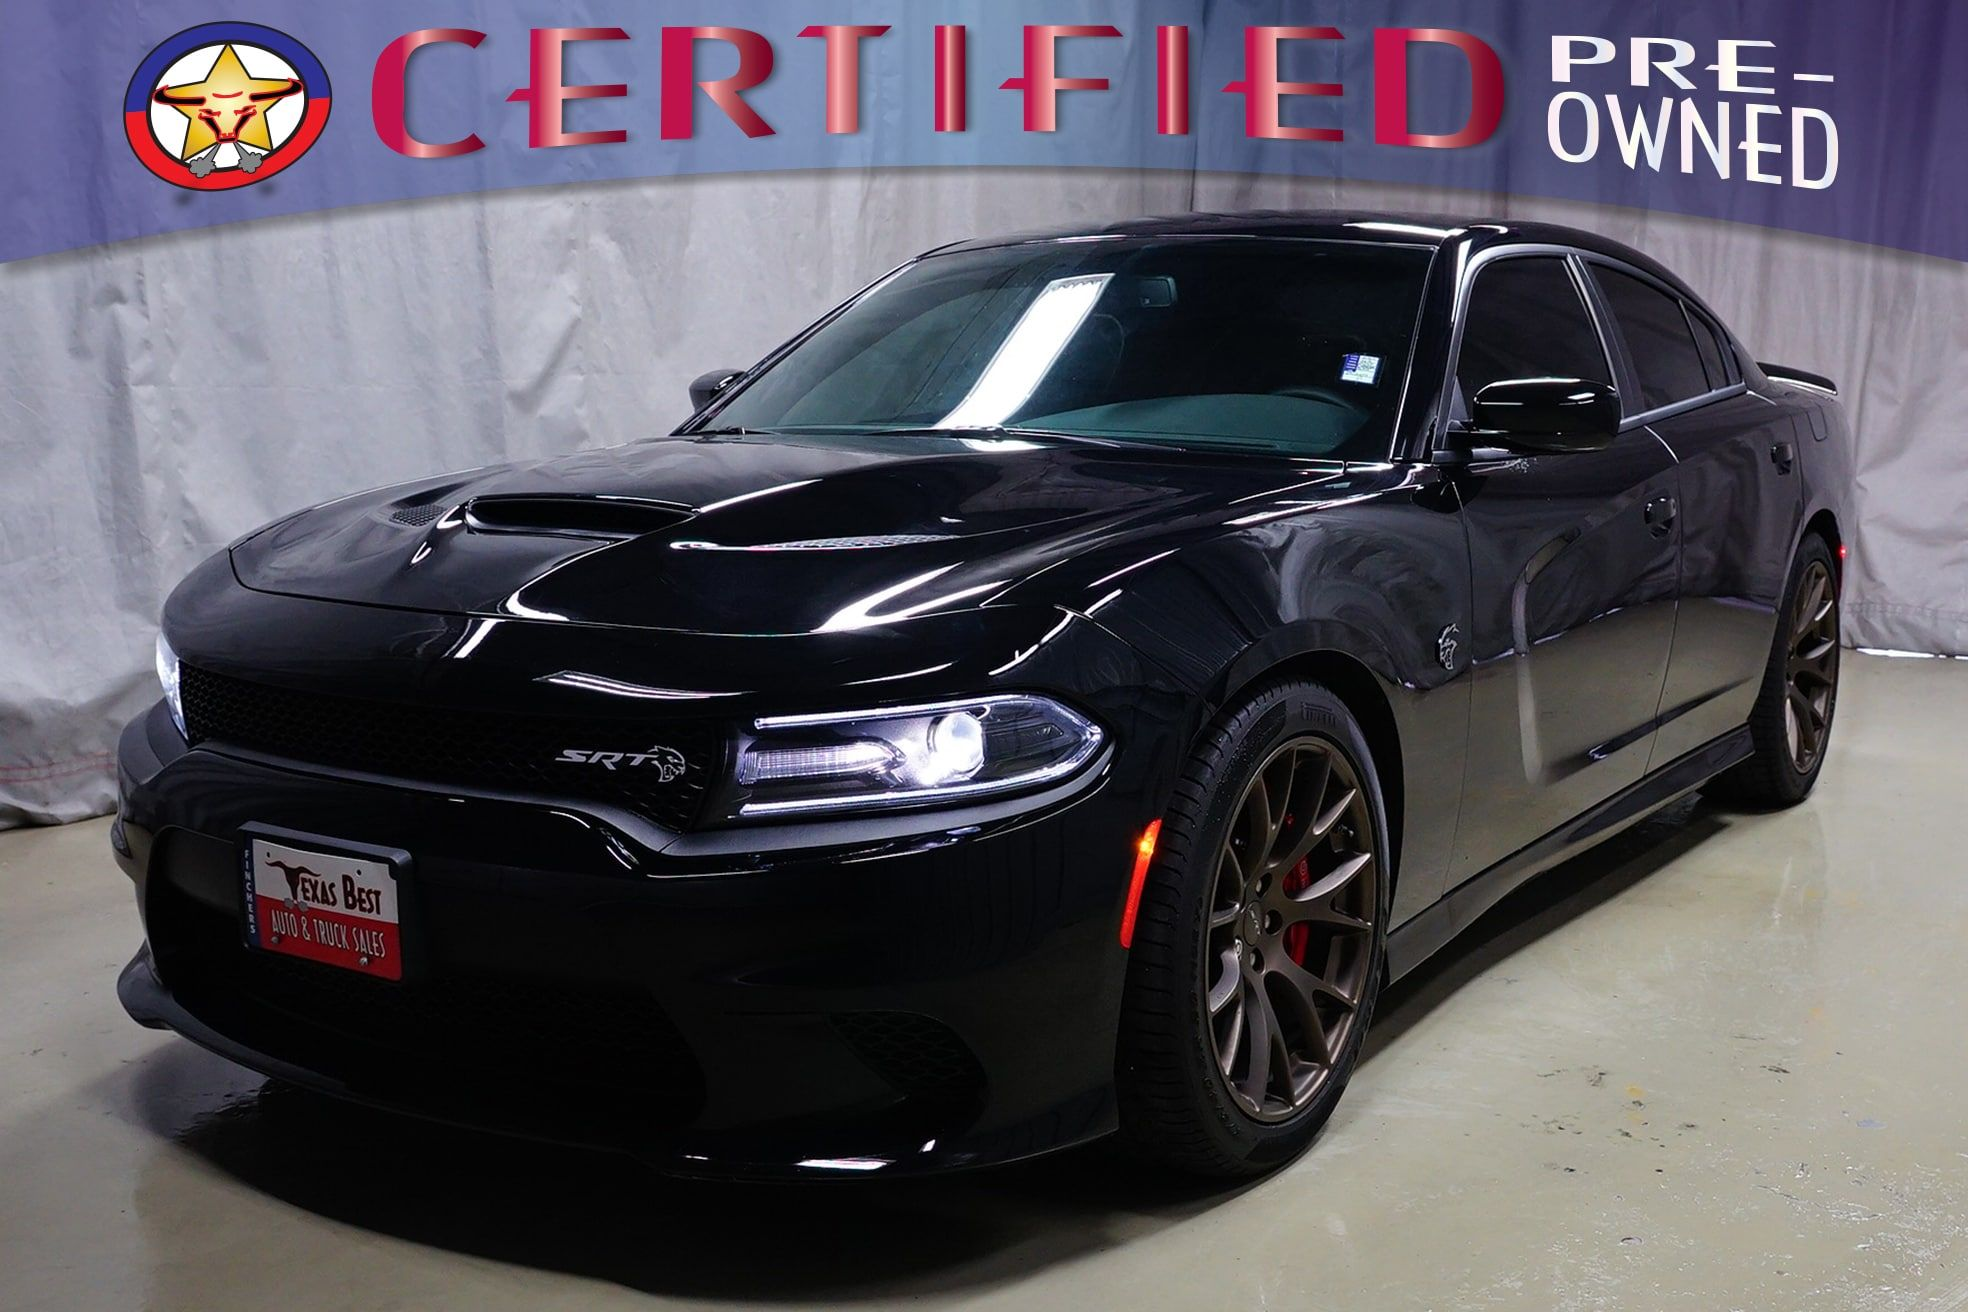 2018 Dodge Charger Srt Hellcat Dodge Charger Srt 2018 Dodge Charger Dodge Charger